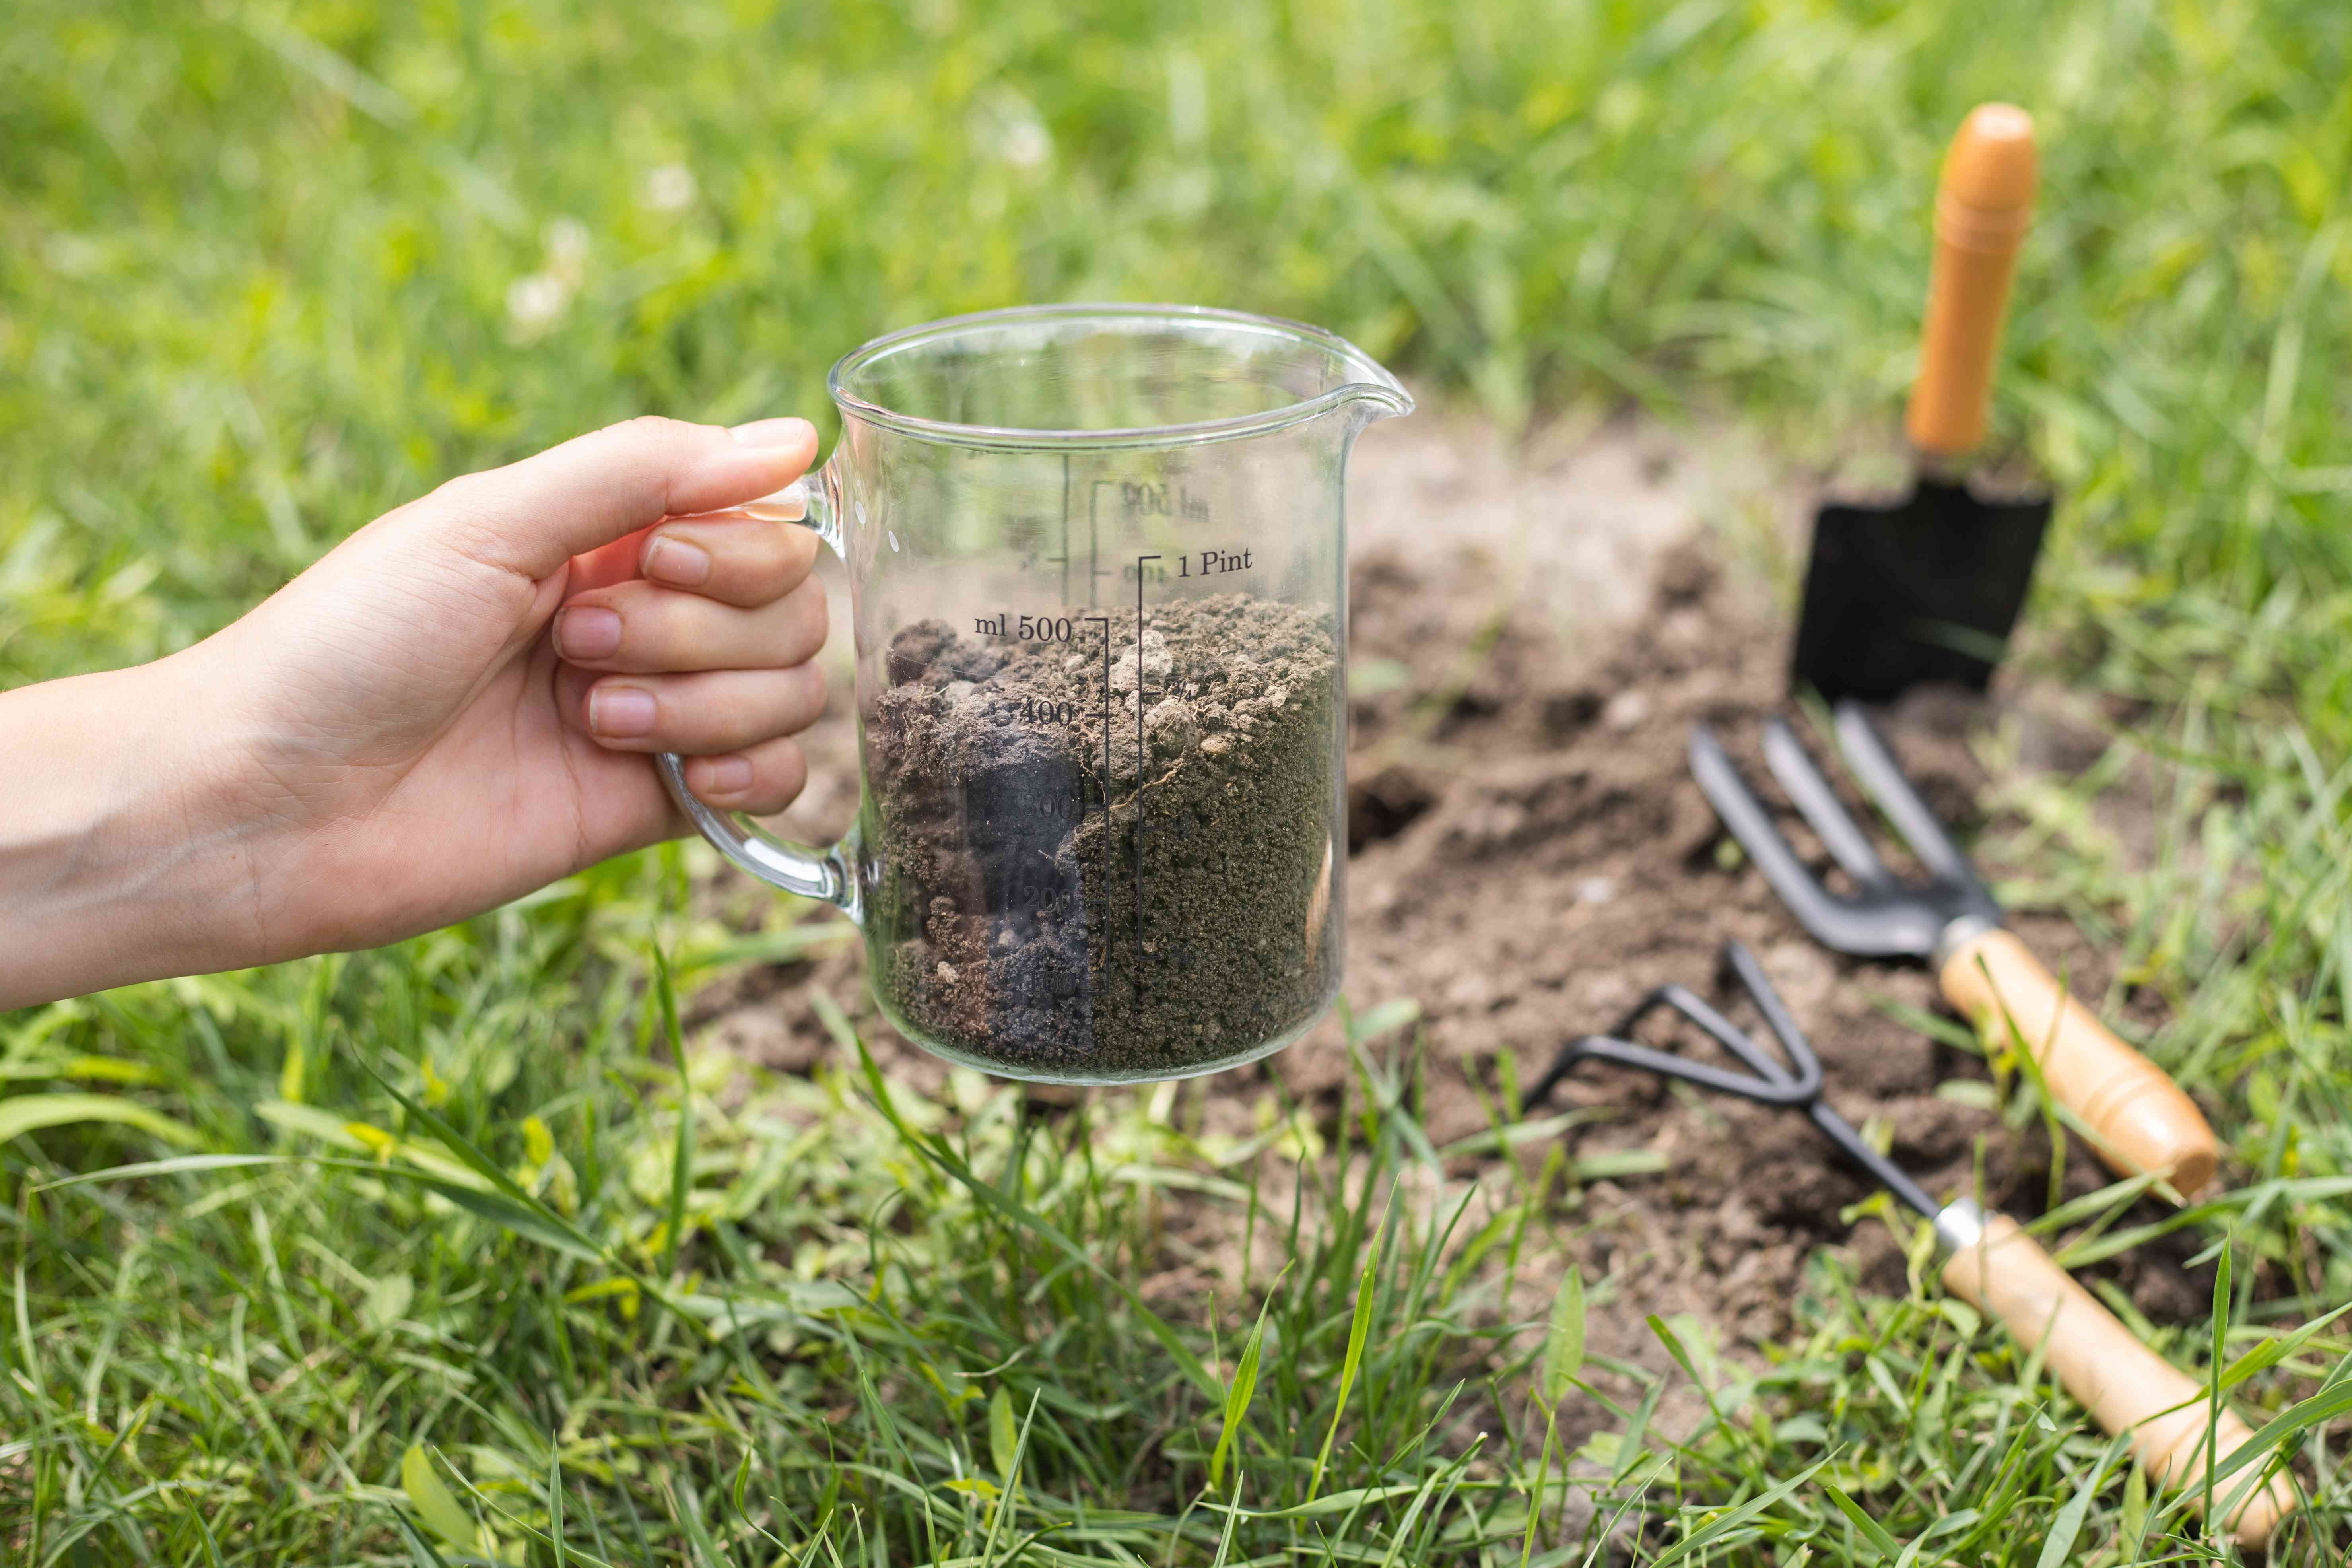 hand holds out glass measuring cup holding cup of freshly dug dirt in garden